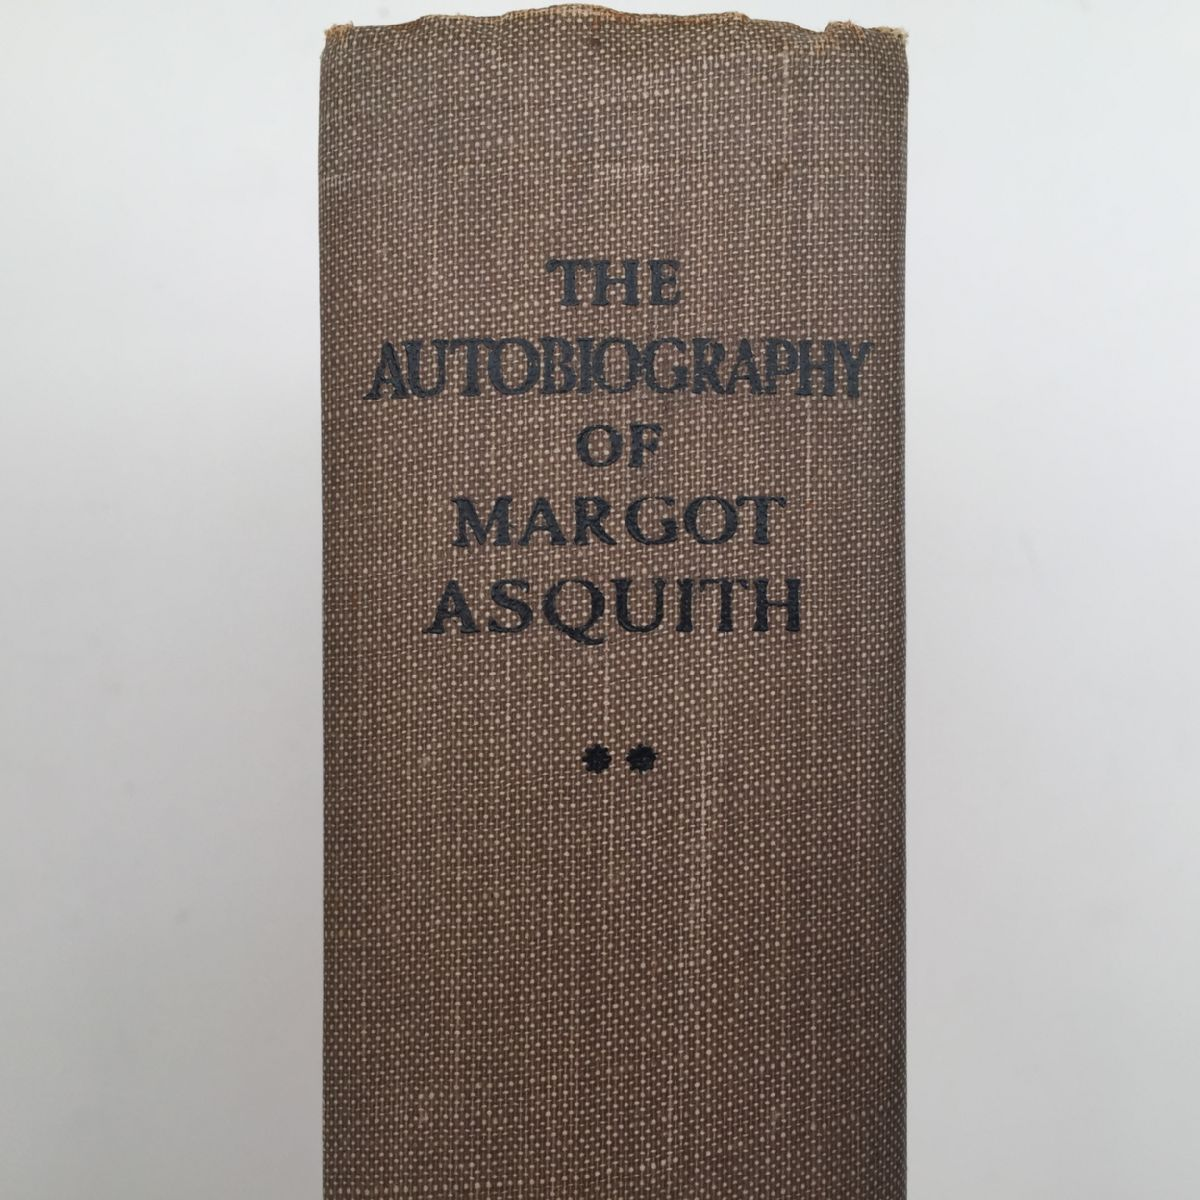 The Autobiography of Margot Asquith